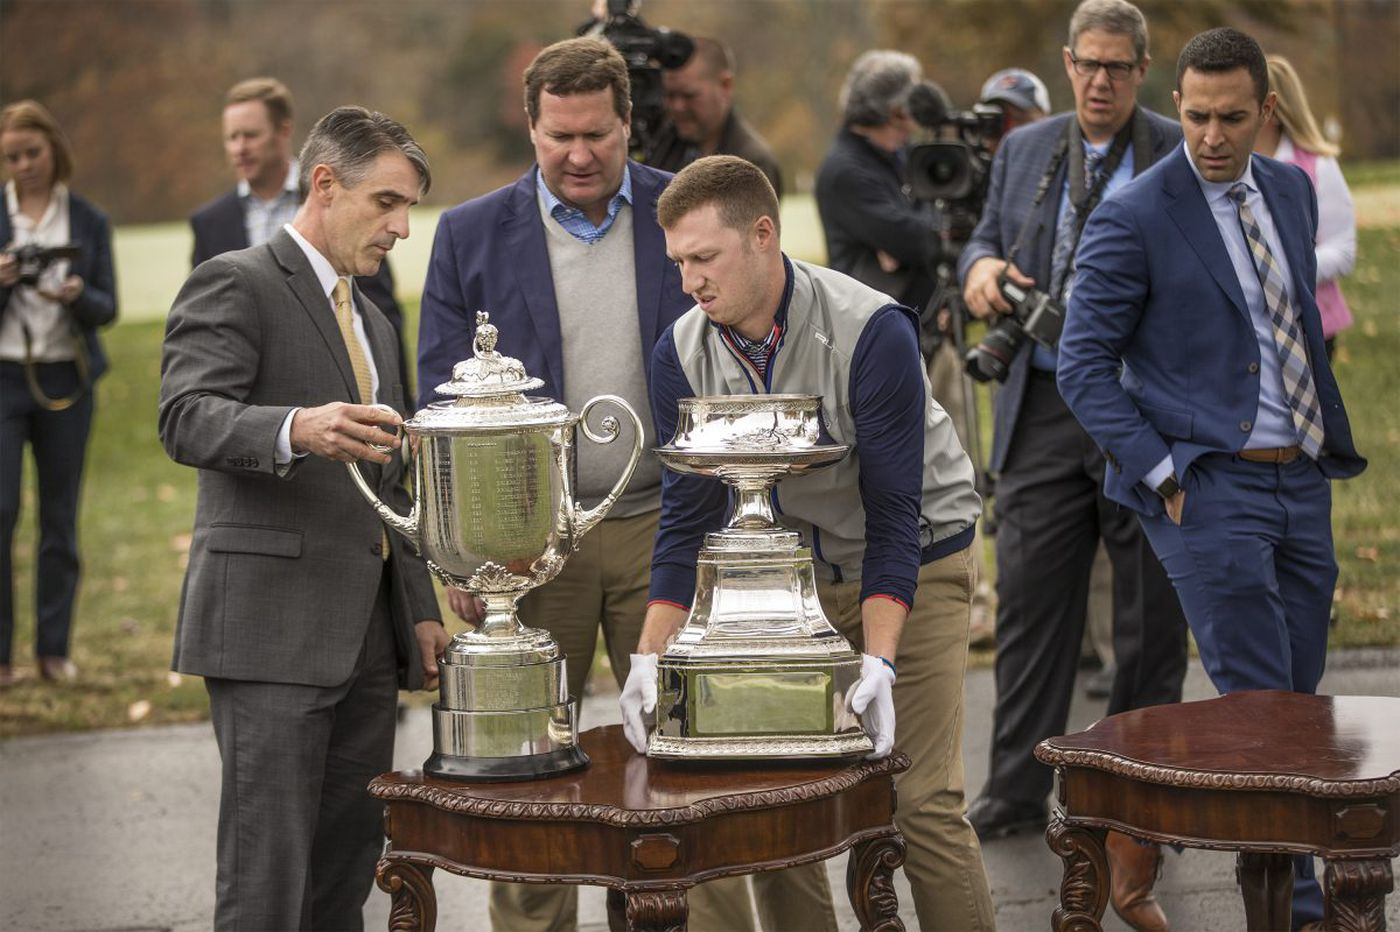 Aronimink makes it official: Two golf majors coming to Philadelphia